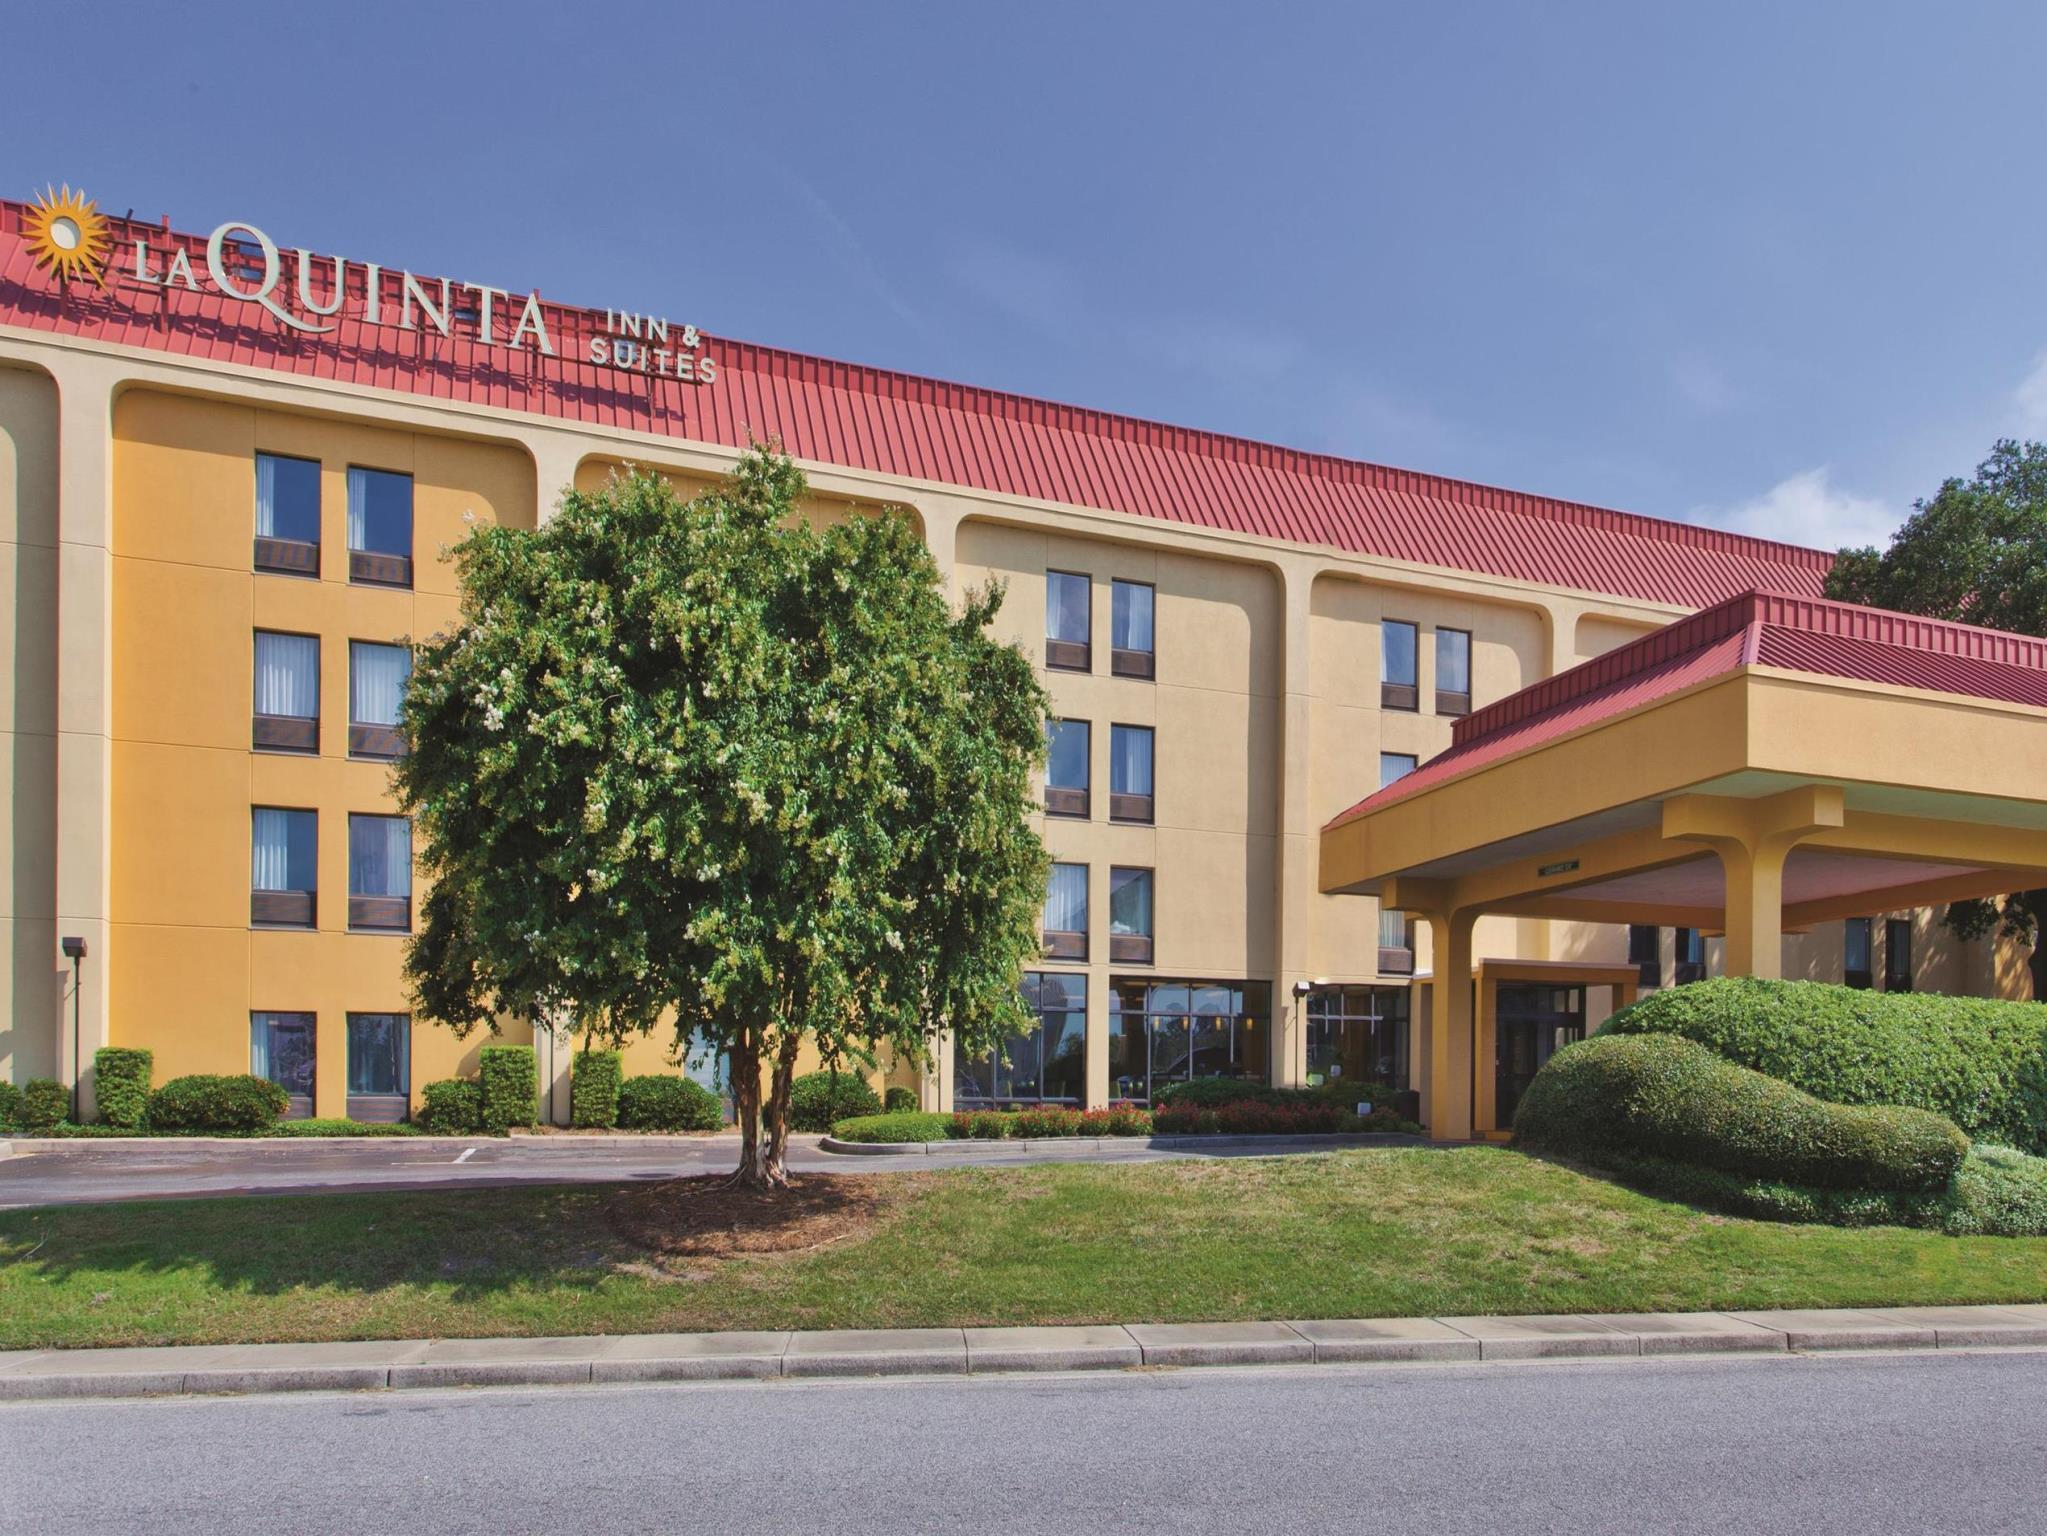 La Quinta Inn And Suites By Wyndham Charleston Riverview